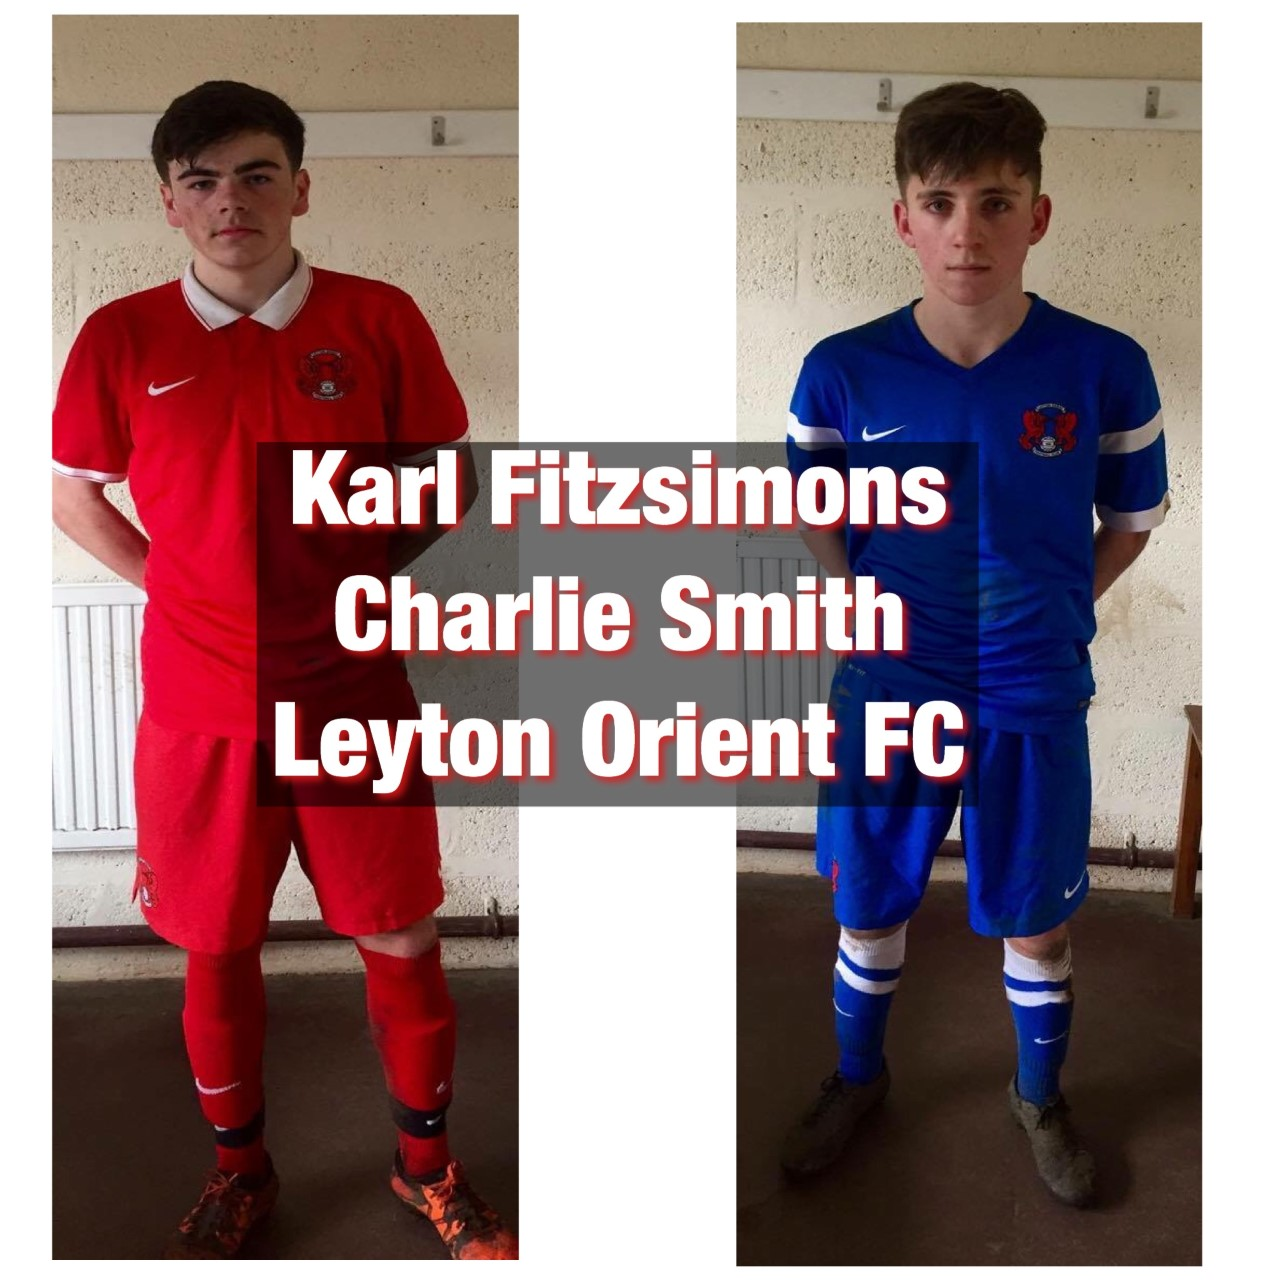 Karl Fitzsimons & Charlie Smith